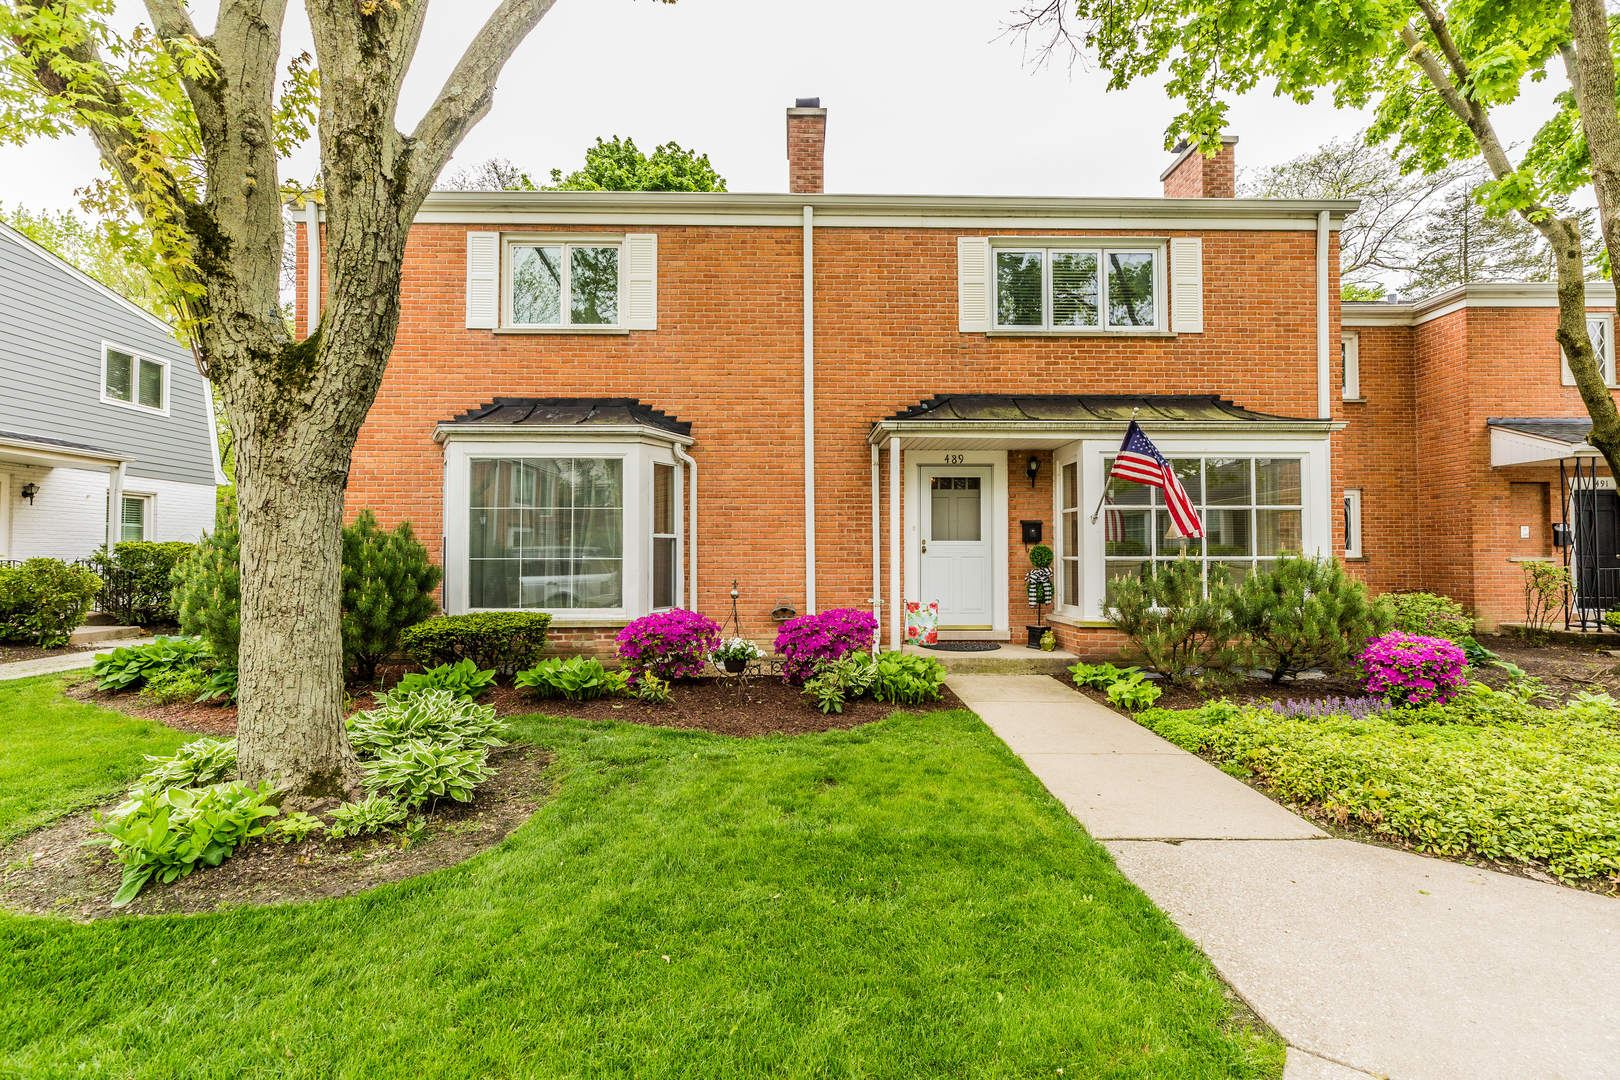 489 Old Surrey Road S, Hinsdale, IL 60521 - #: 10723197